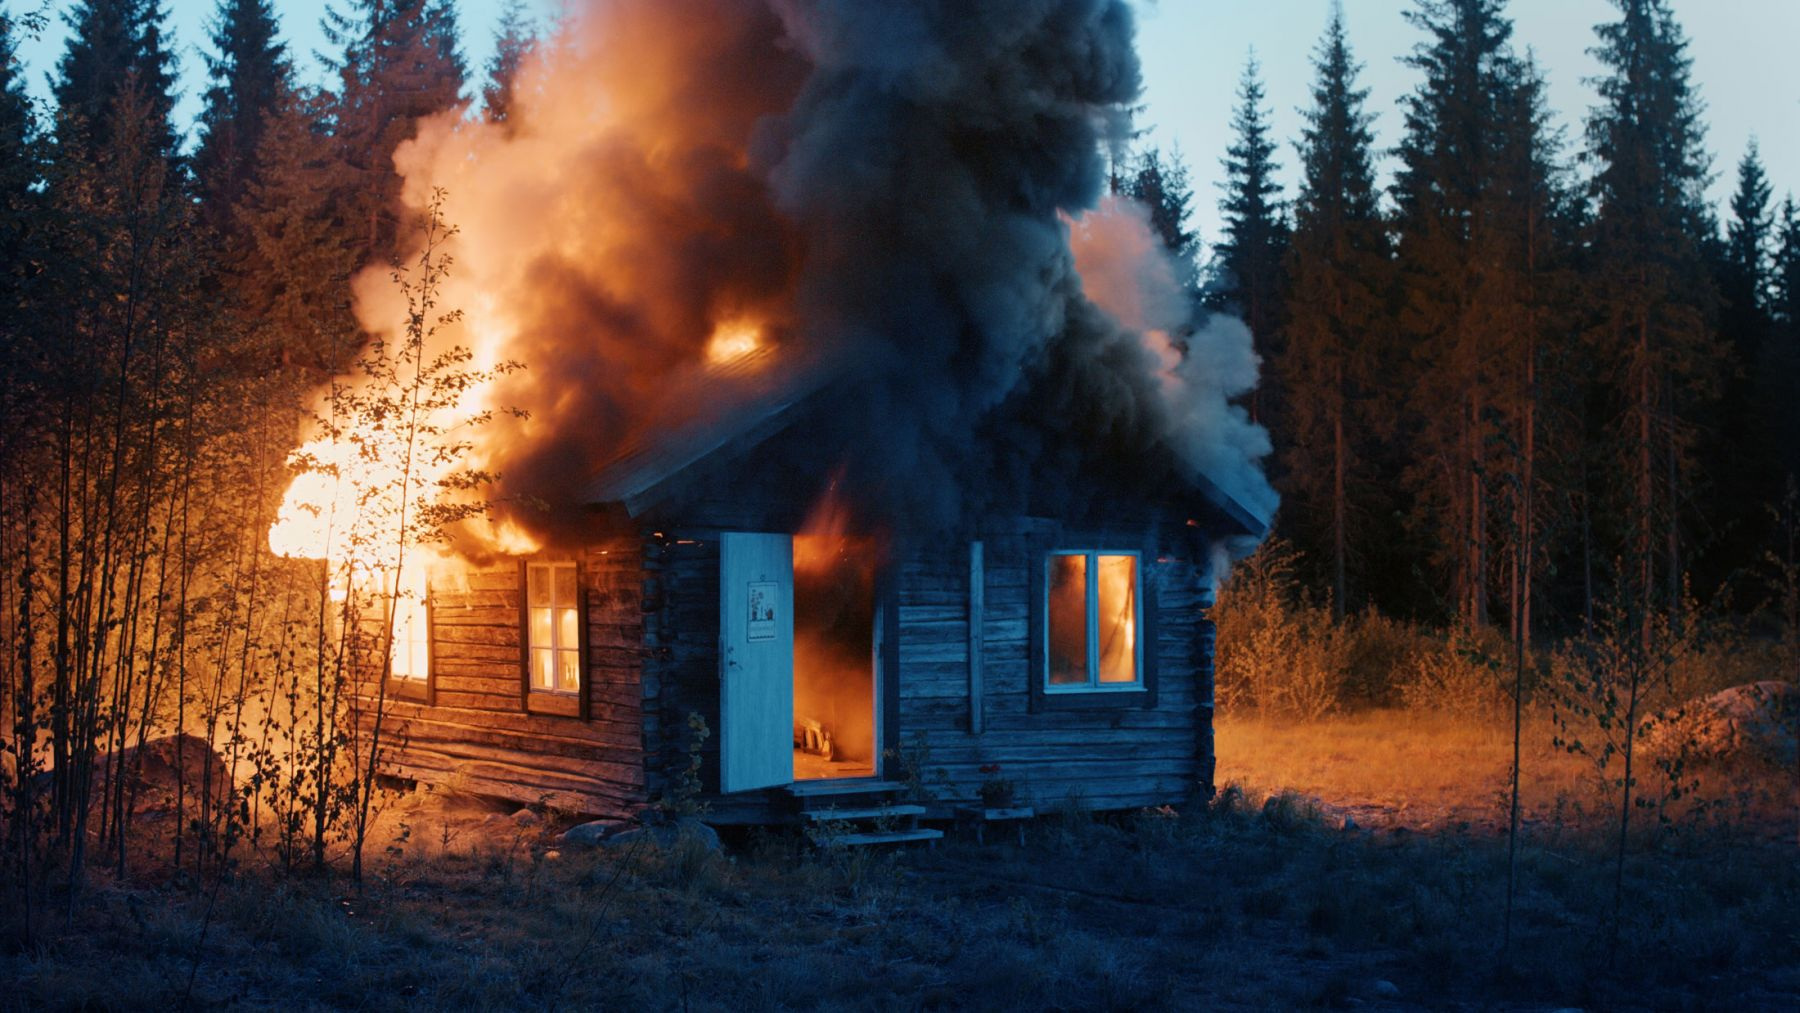 Ragnar Kjartansson Scenes from Western Culture, Burning House, 2015